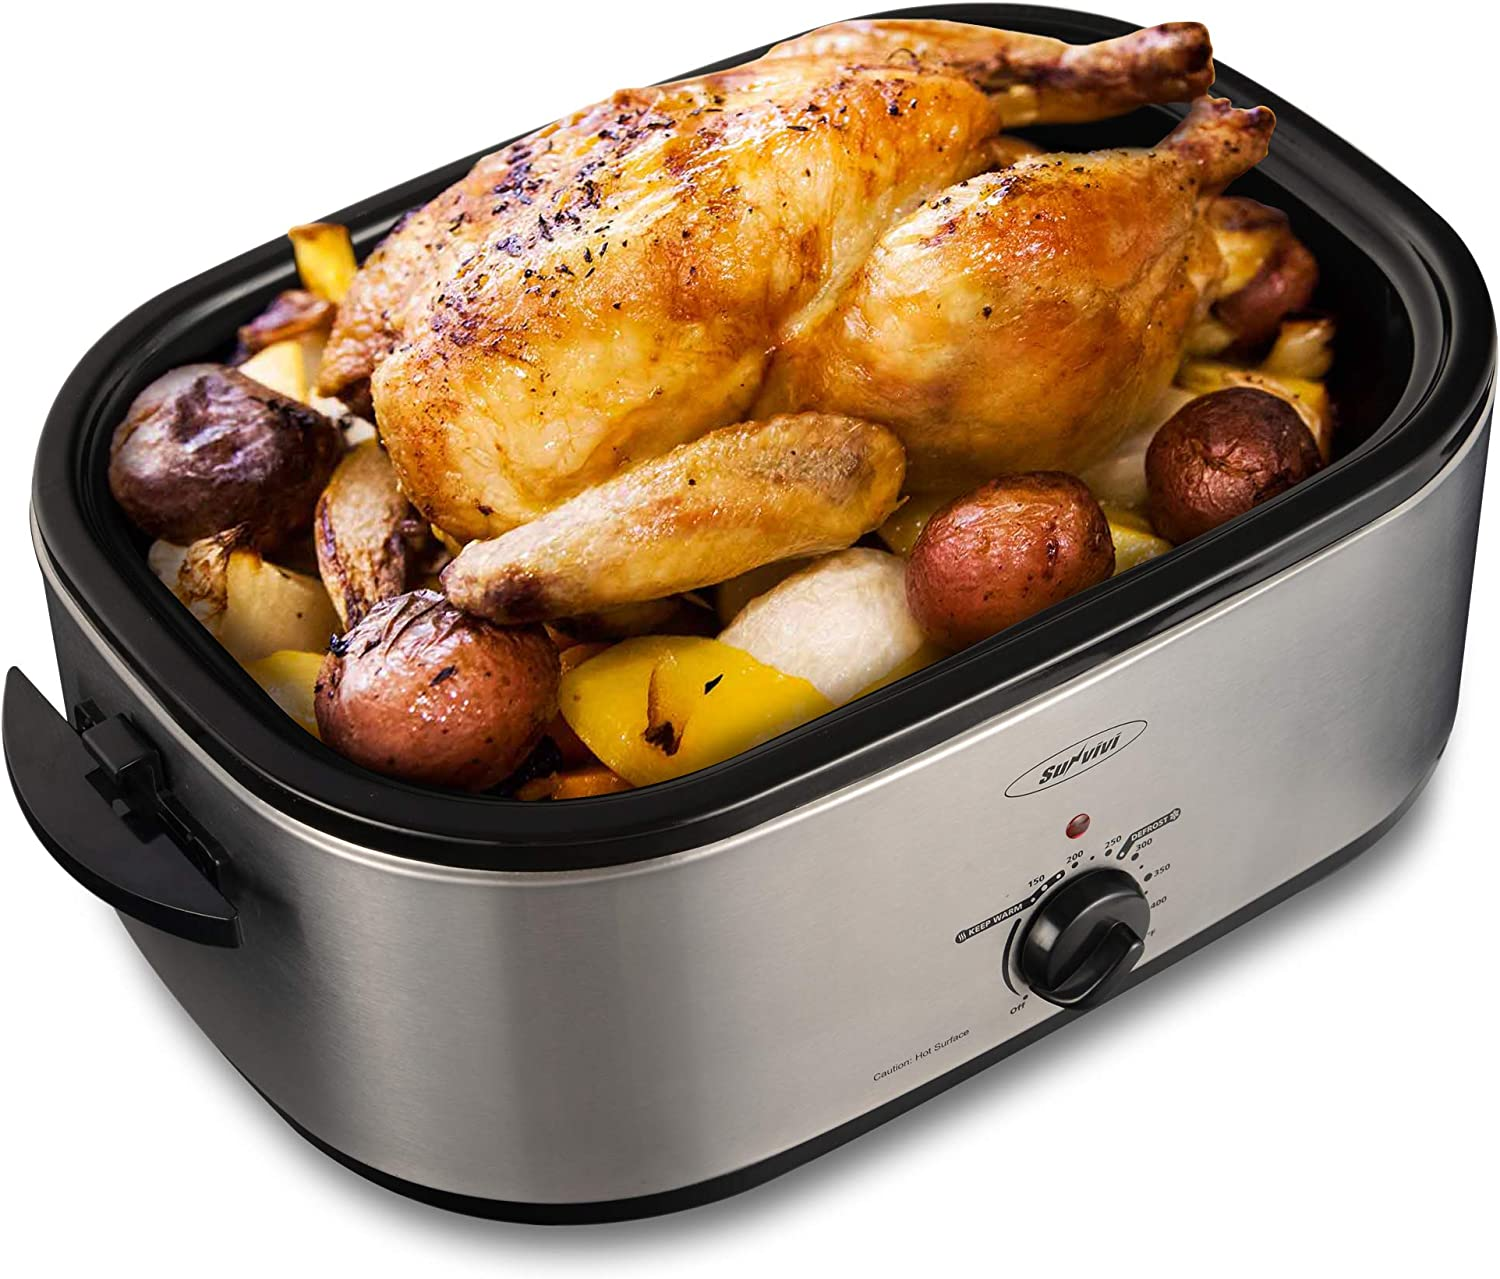 Large Electric Roaster Oven with Self-Basting Lid, Turkey Roaster Oven with Removable Insert Pot, Full-range Temperature Control and Cool-Touch Handles (20 QT, Silver)